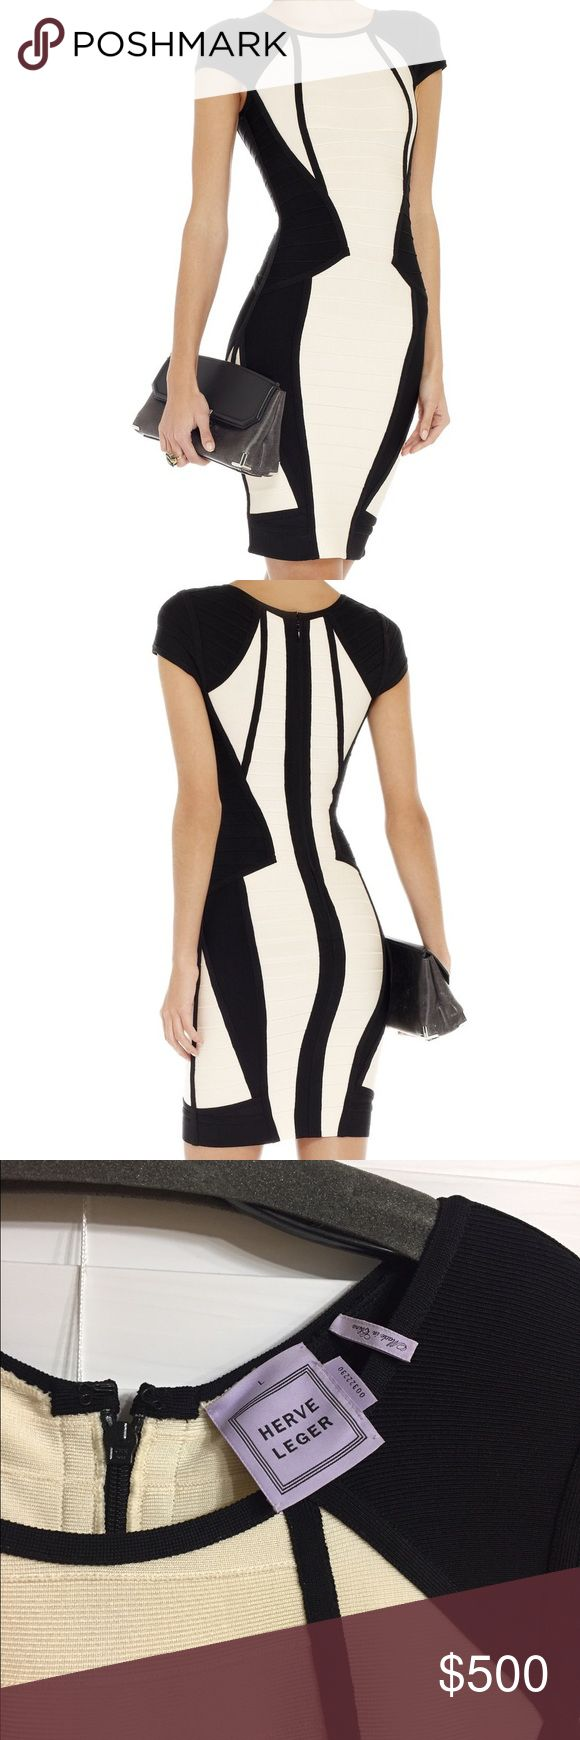 💯% Authentic Herve léger Gorgeous Herve léger two tone bandage dress worn once! As seen on TV! ;) Herve Leger Dresses